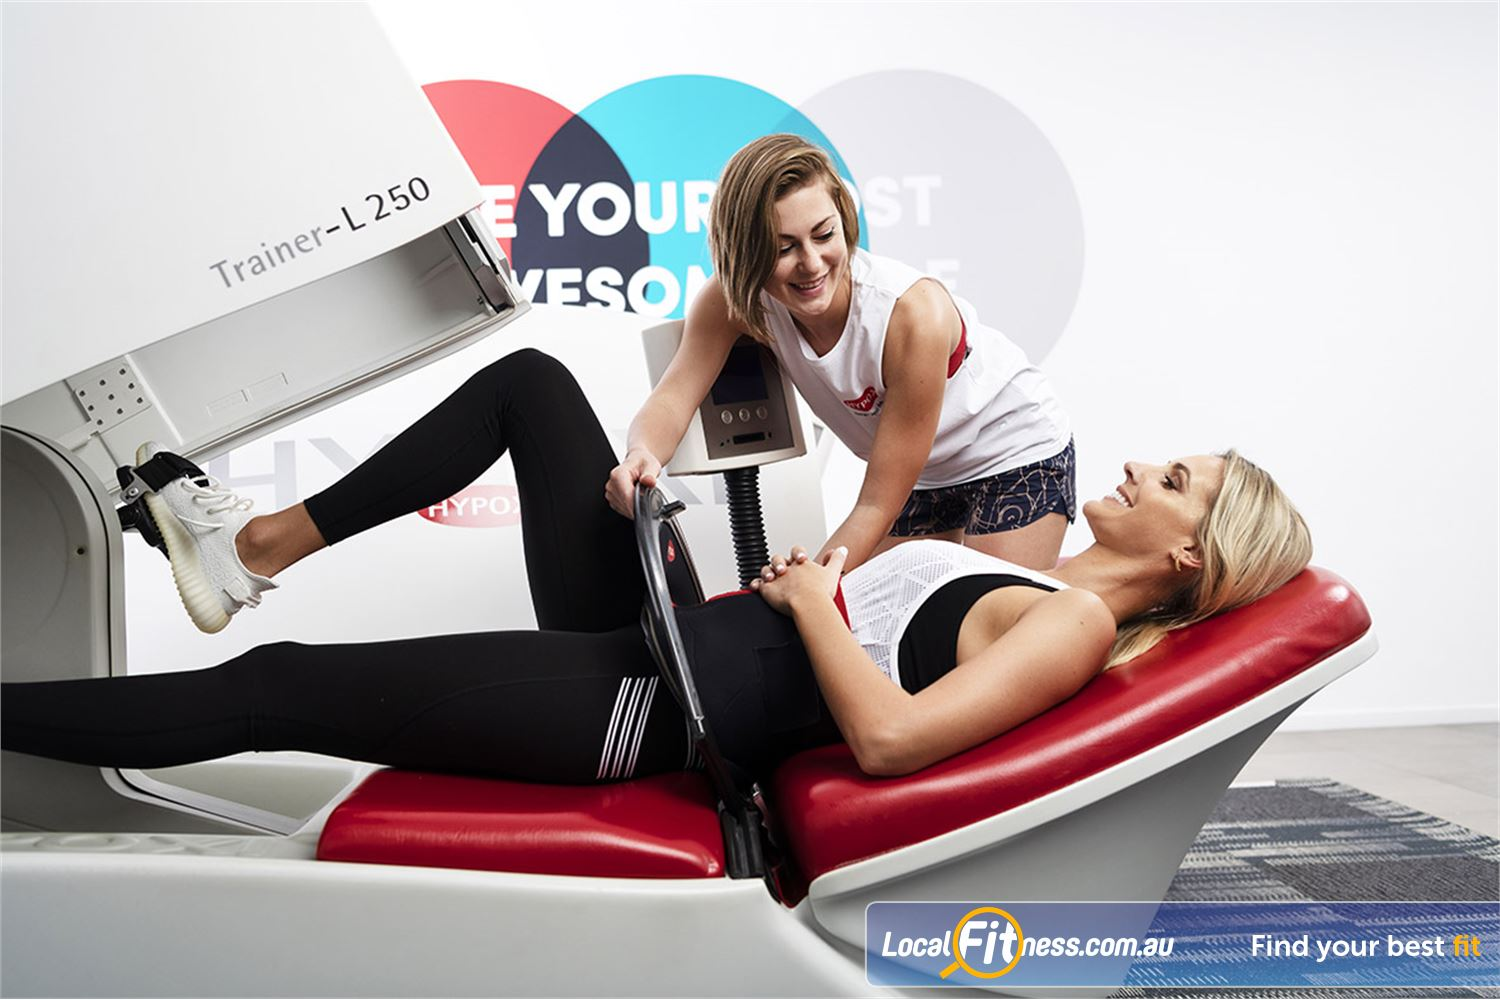 HYPOXI Weight Loss Near Mount Ommaney Average client loses 26cm in first 4 weeks at HYPOXI Jindalee.